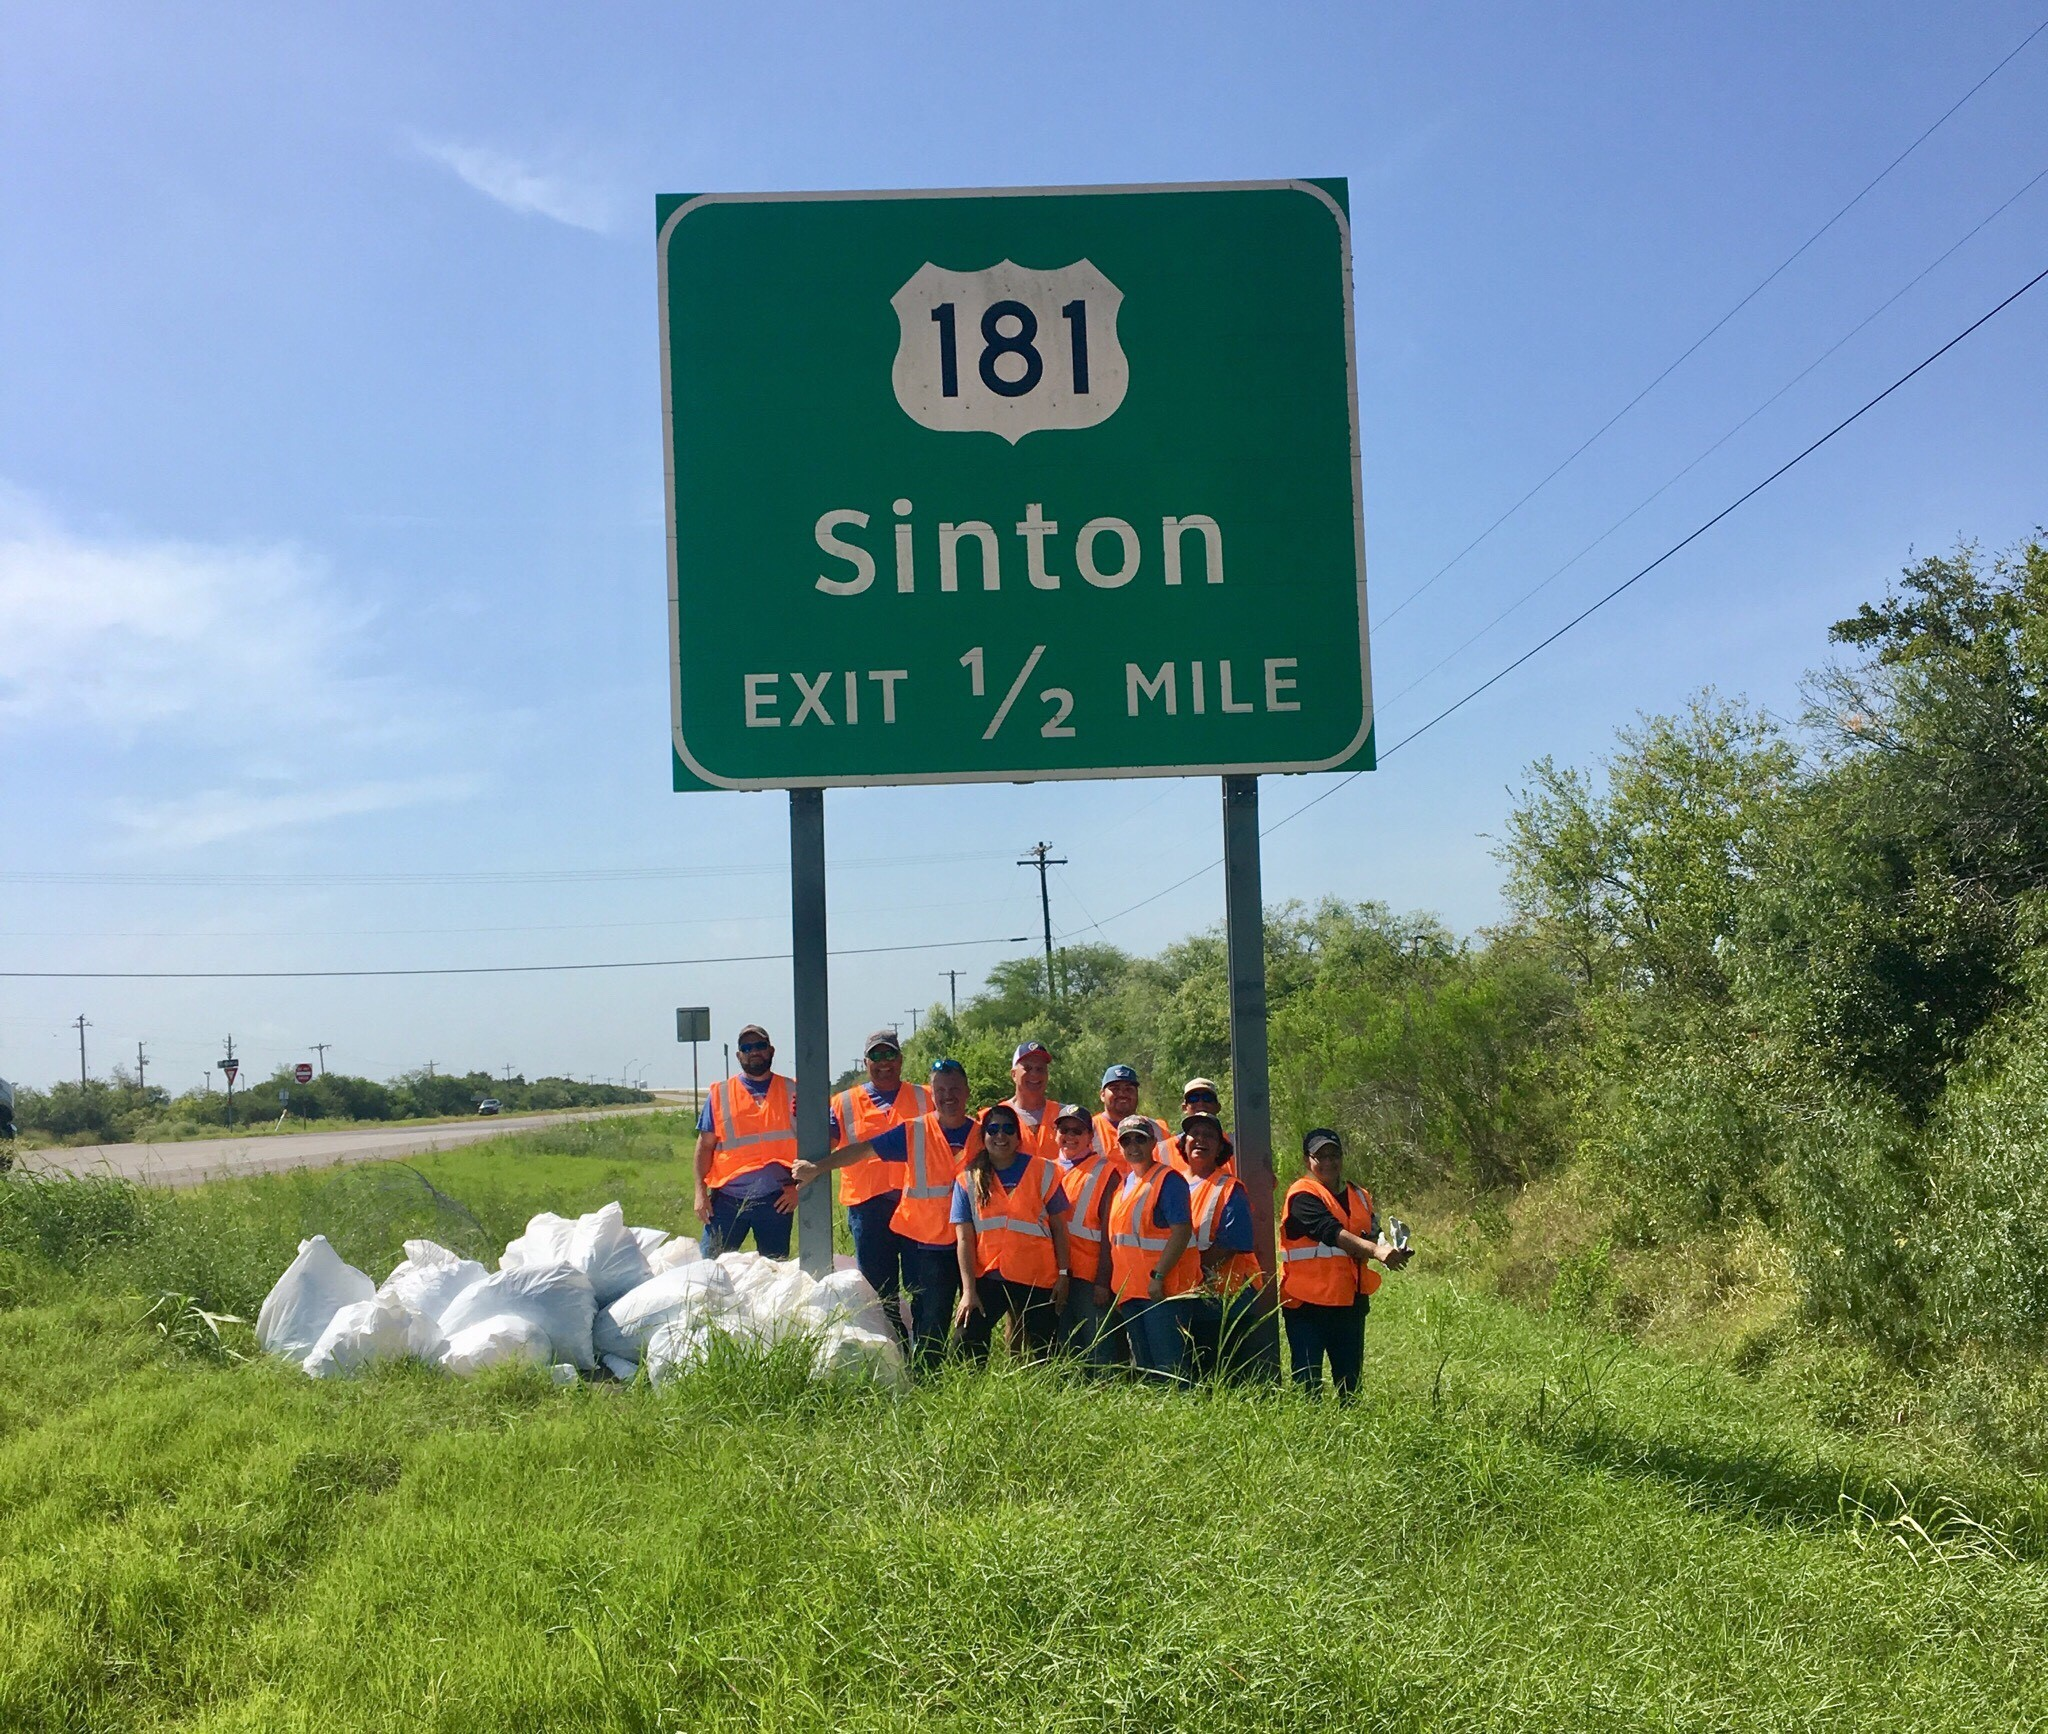 SPEC Employees posing next to sign and trash collected at Adopt-A-Highway